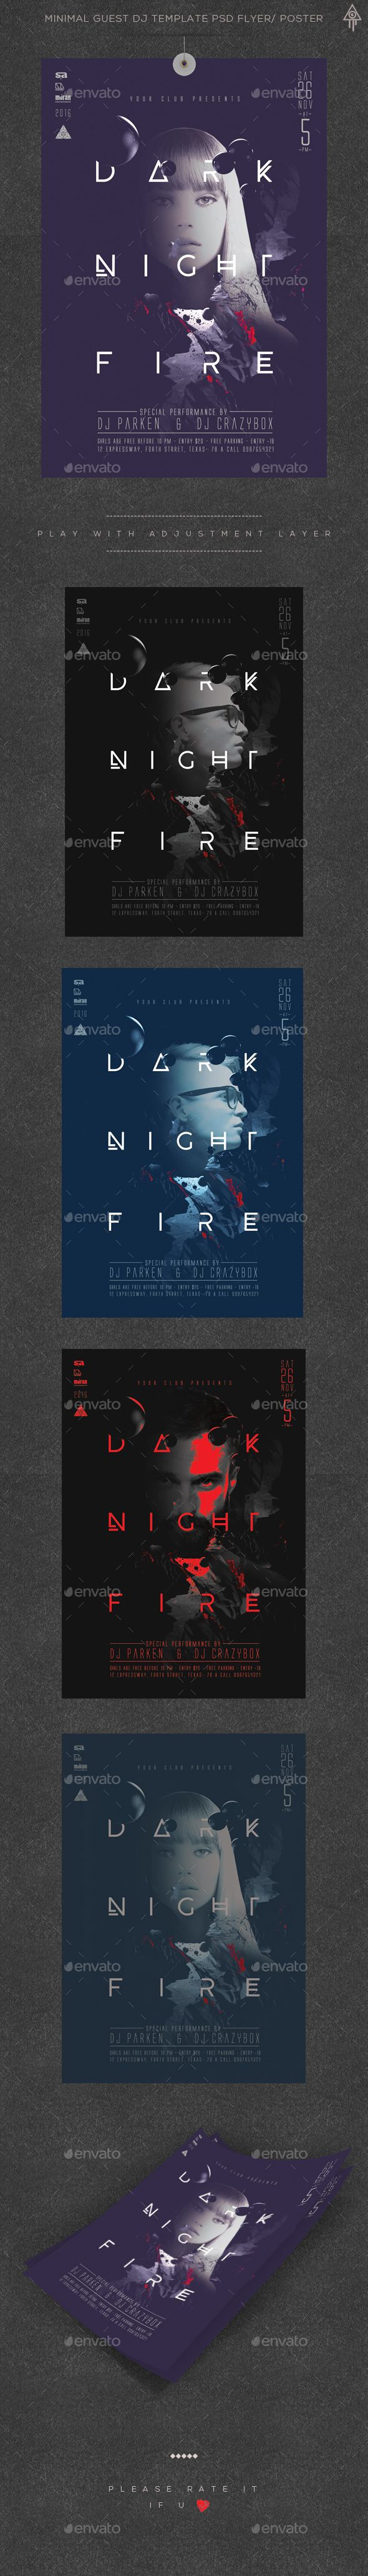 Minimal Dark Night Guest Dj Poster / Flyer Template PSD. Download ...